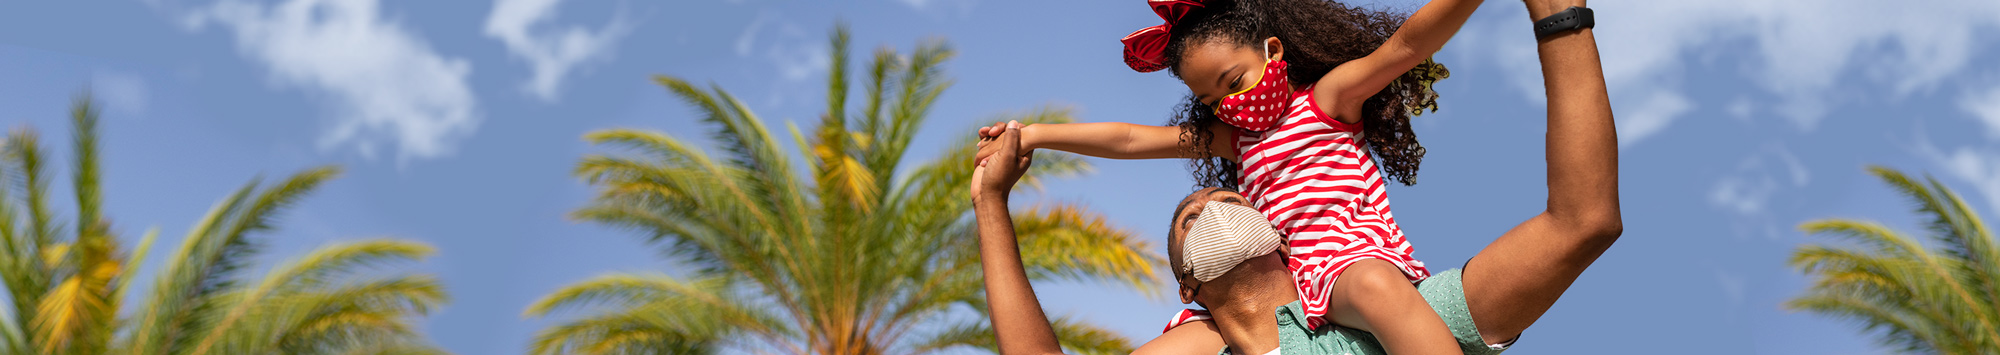 Spring Into Magic! Save Up to 30% on Rooms at Select Disney Resort Hotels